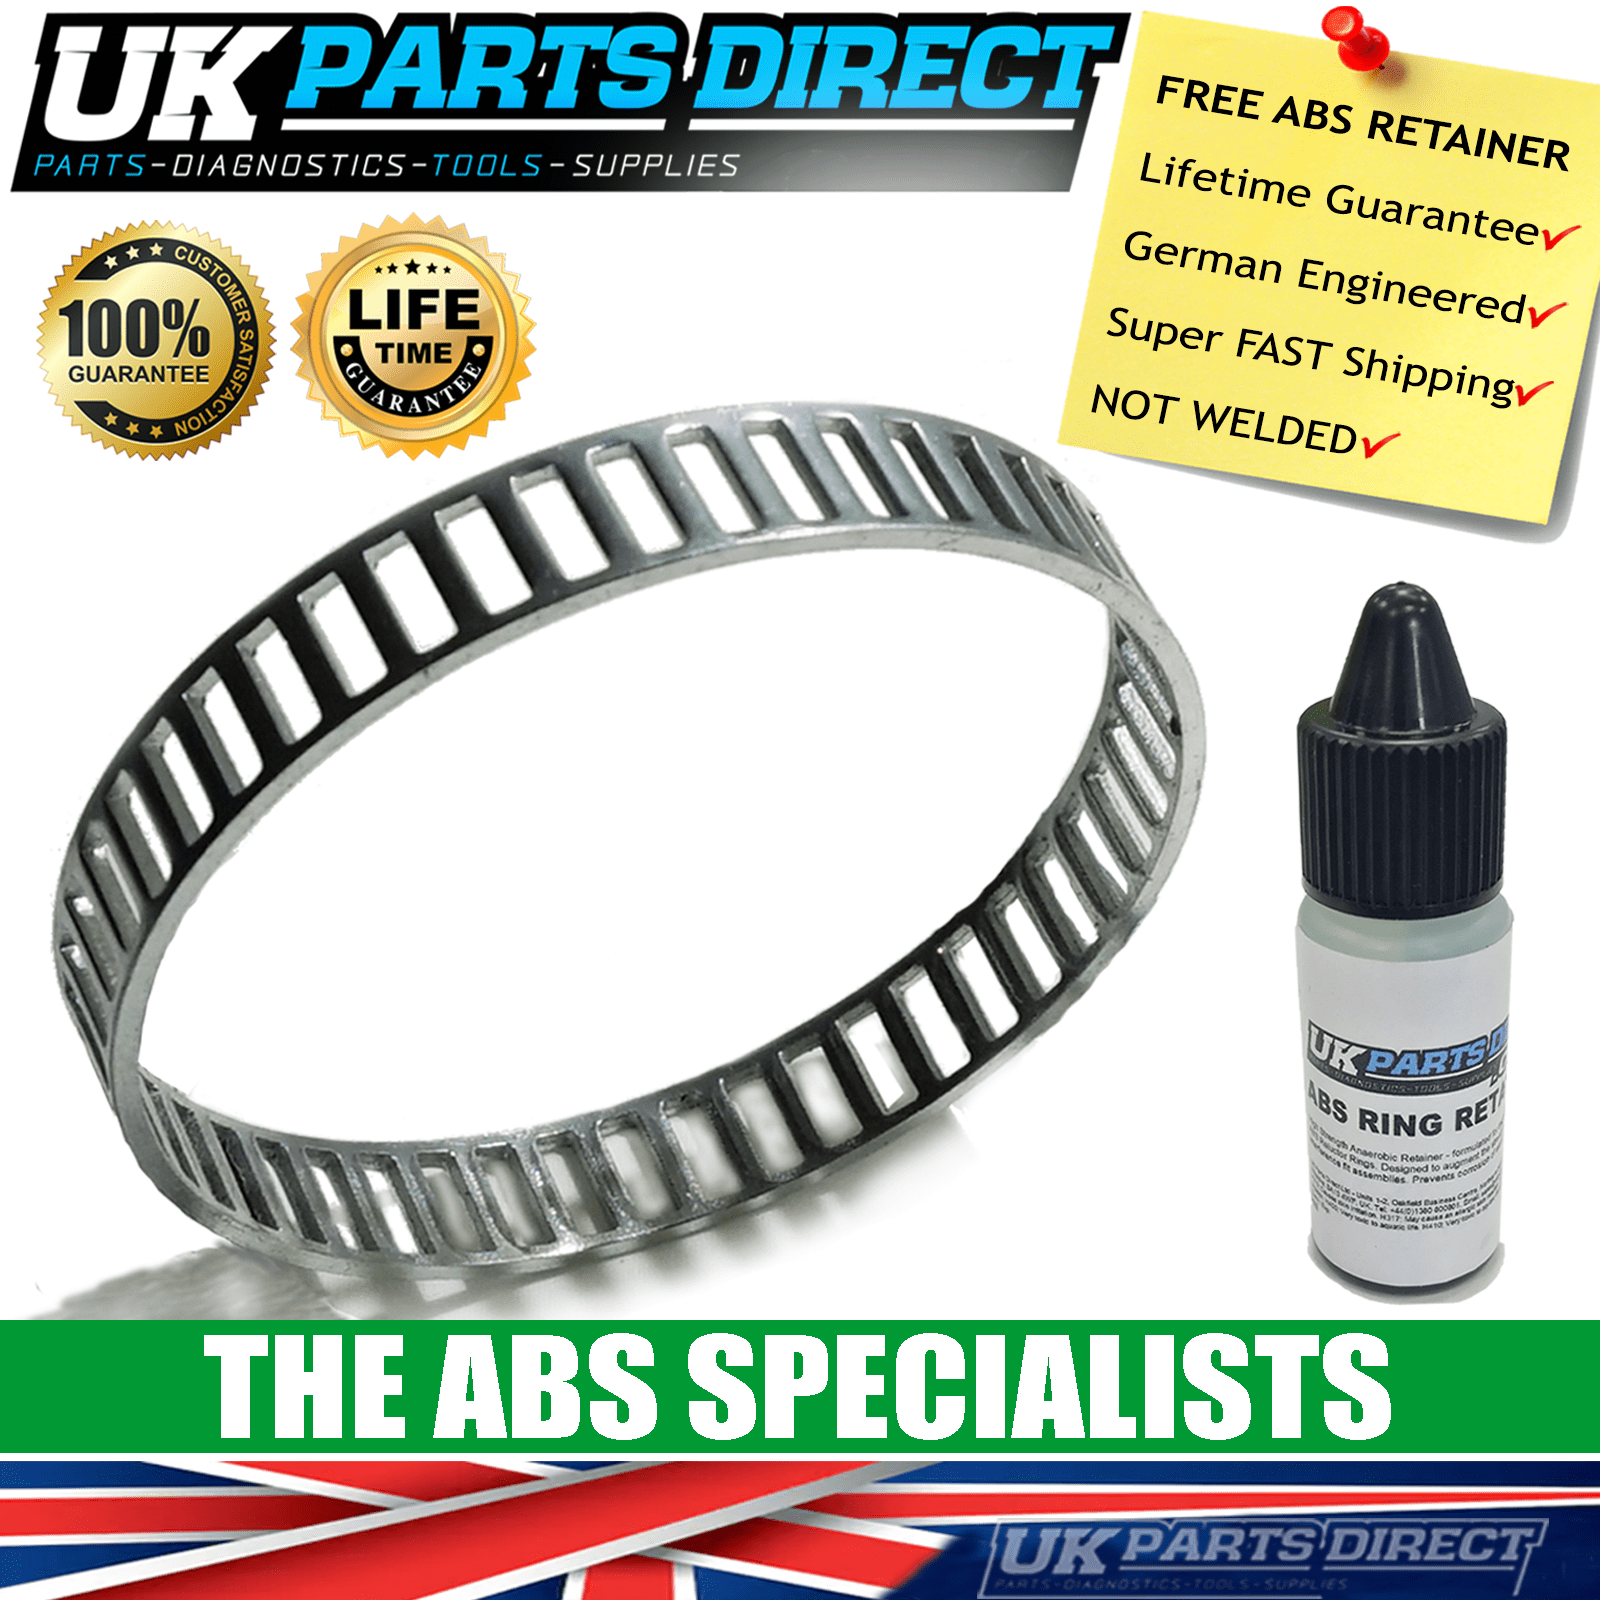 Audi A4 Quattro ABS Reluctor Ring Rear *FREE RETAINER* 1995-2005